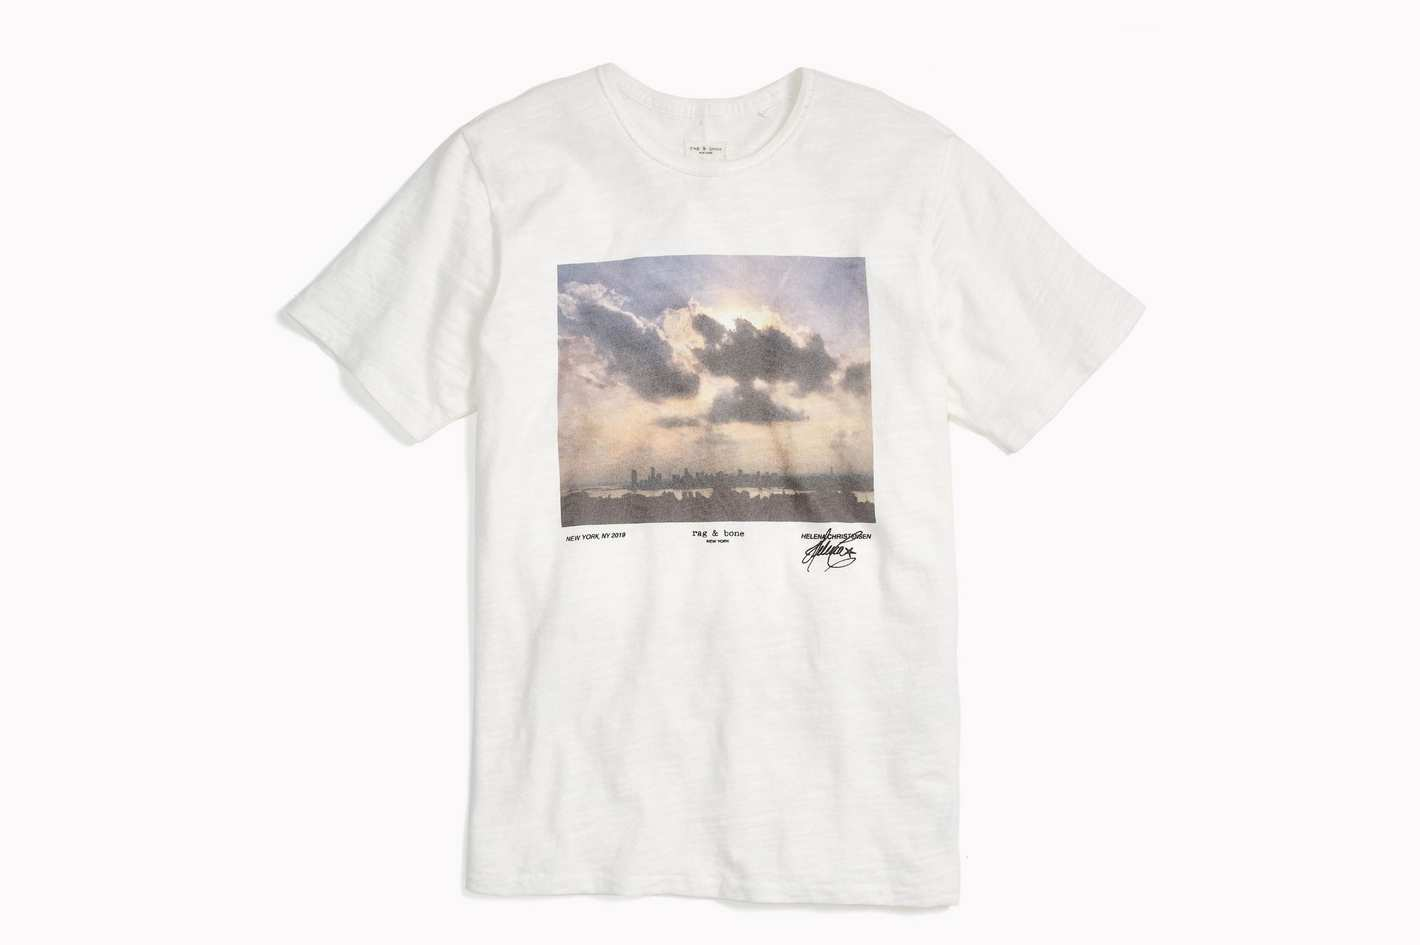 Limited Edition Tee By Helena Christensen